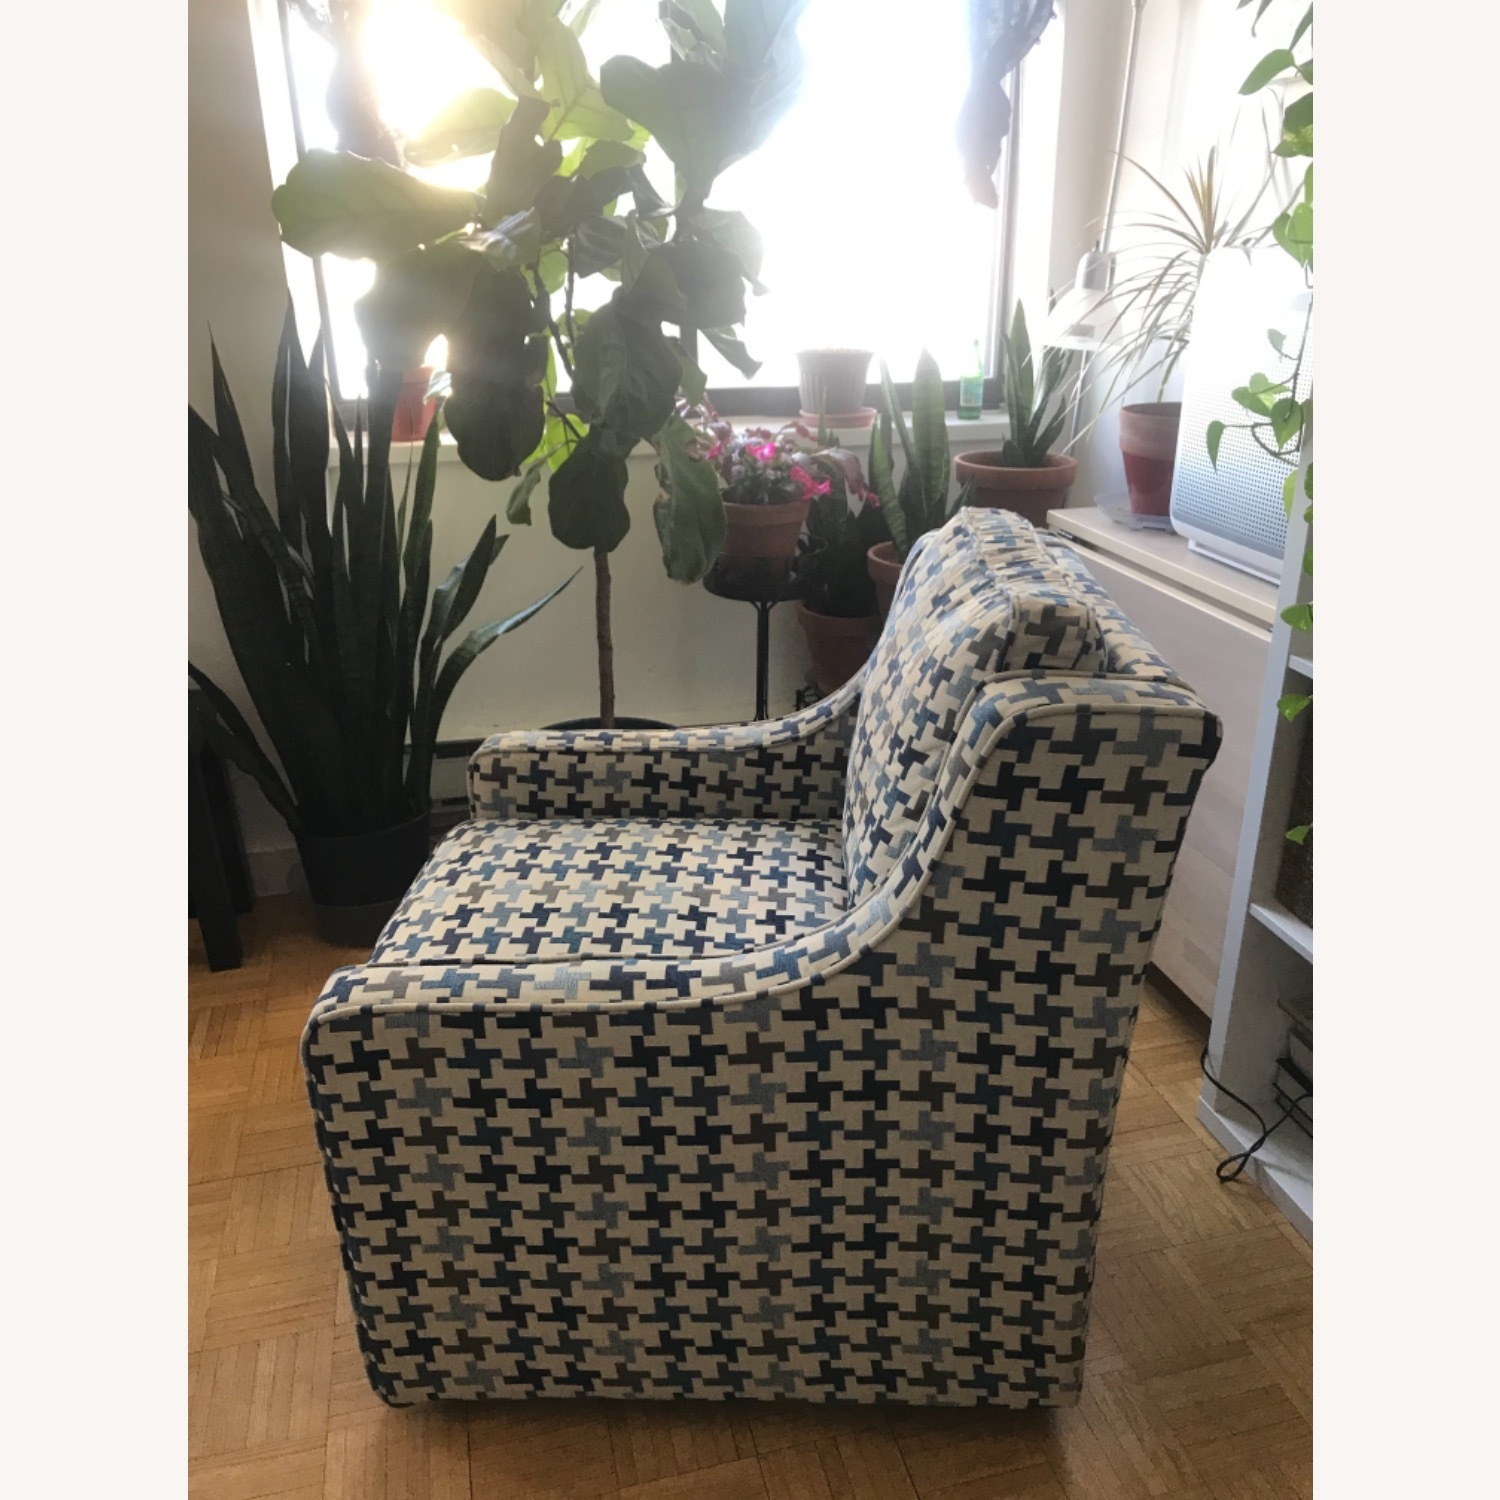 Bob's Discount Furniture Blue Patterned Armchair - image-5